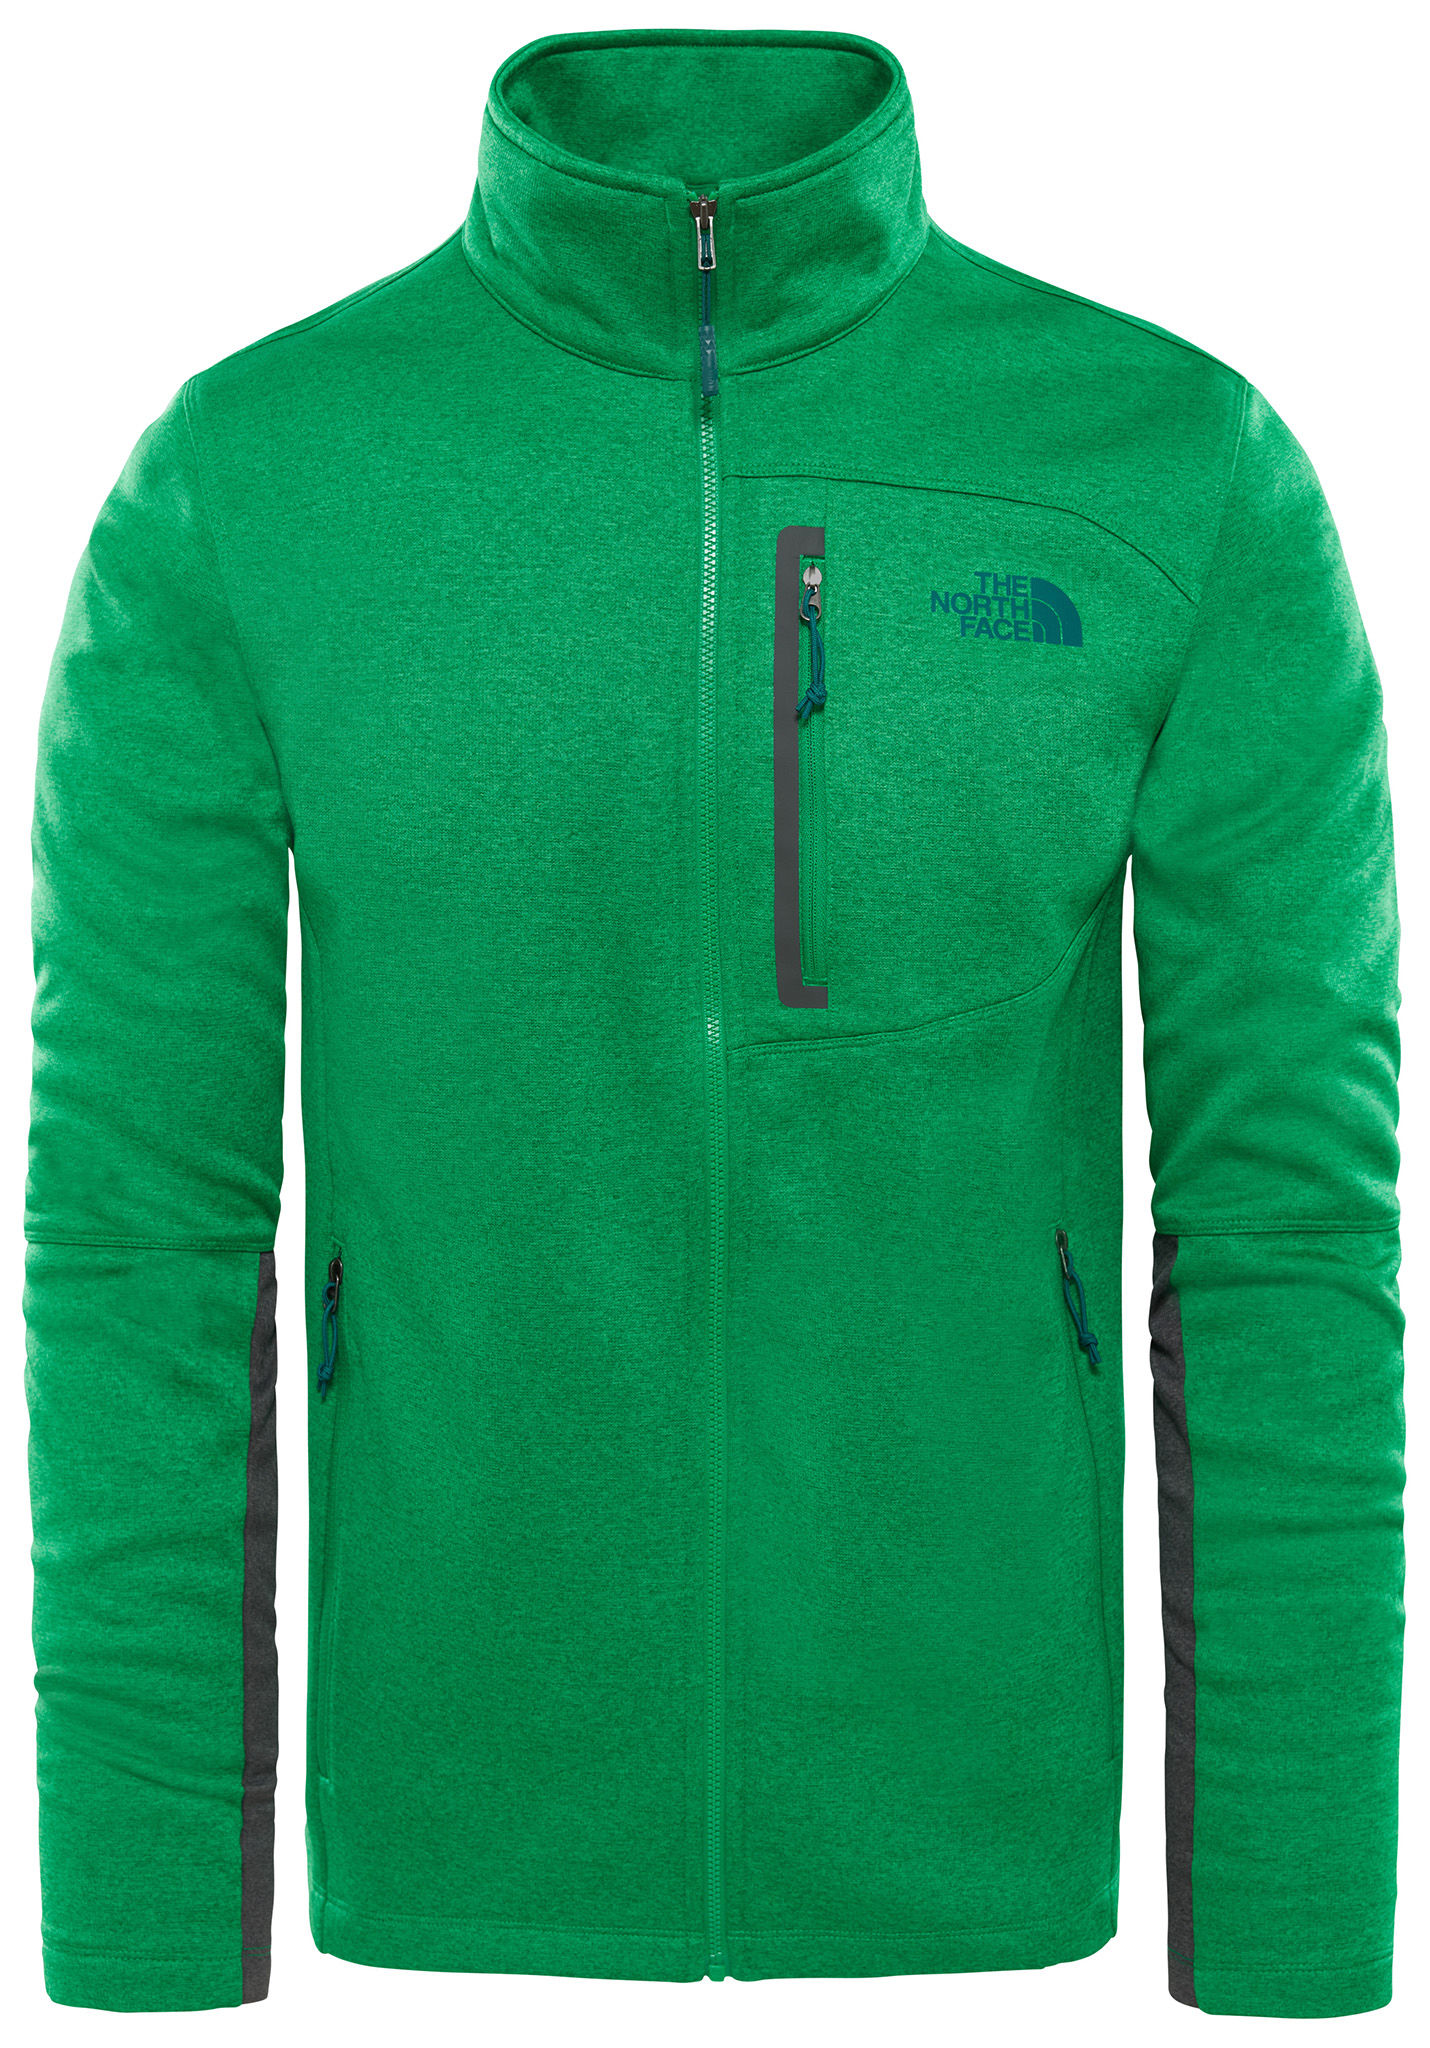 THE NORTH FACE Canyonlands Full - Giacca di pile per Uomo - Verde - Planet  Sports a89f2b0eb50b